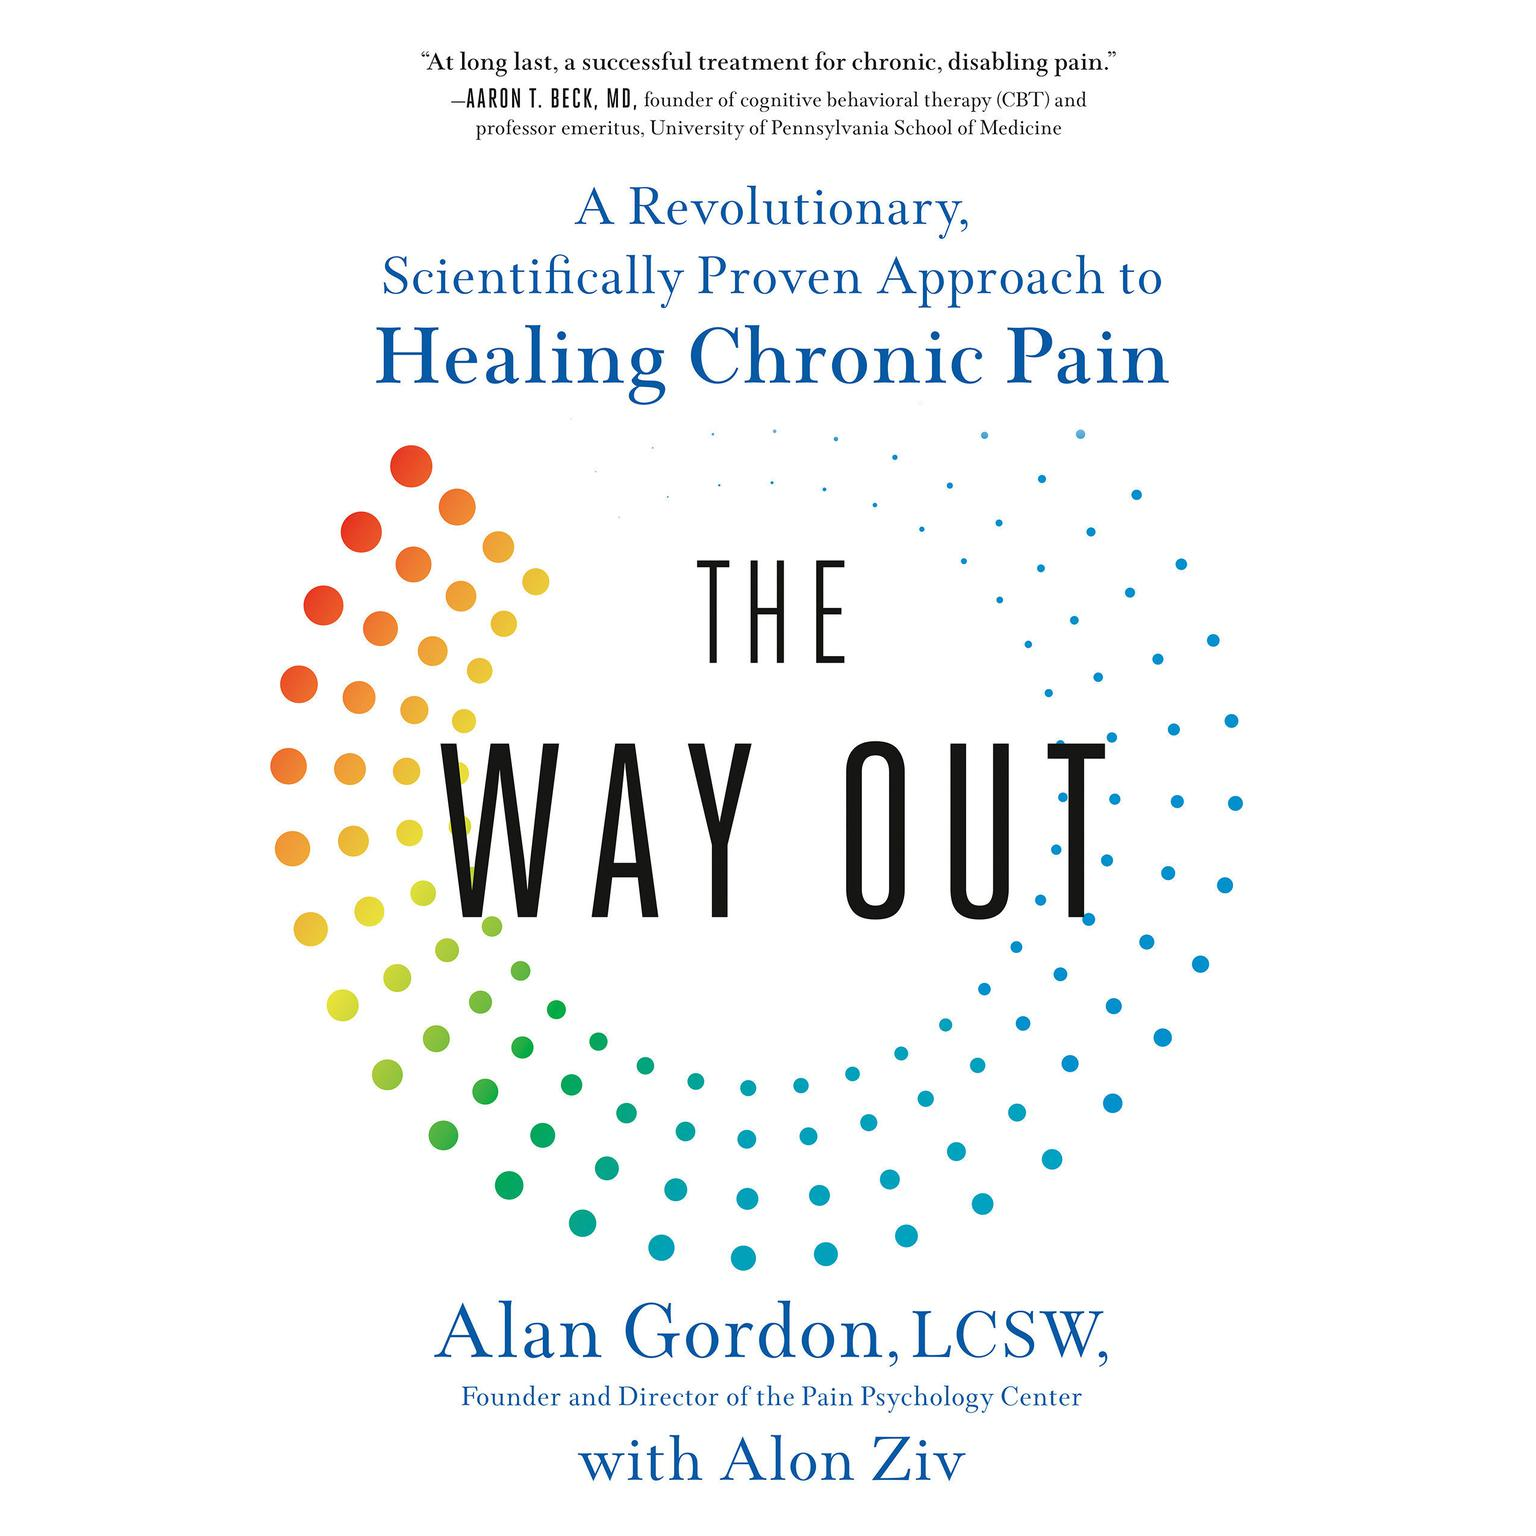 The Way Out: A Revolutionary, Scientifically Proven Approach to Healing Chronic Pain Audiobook, by Alan Gordon